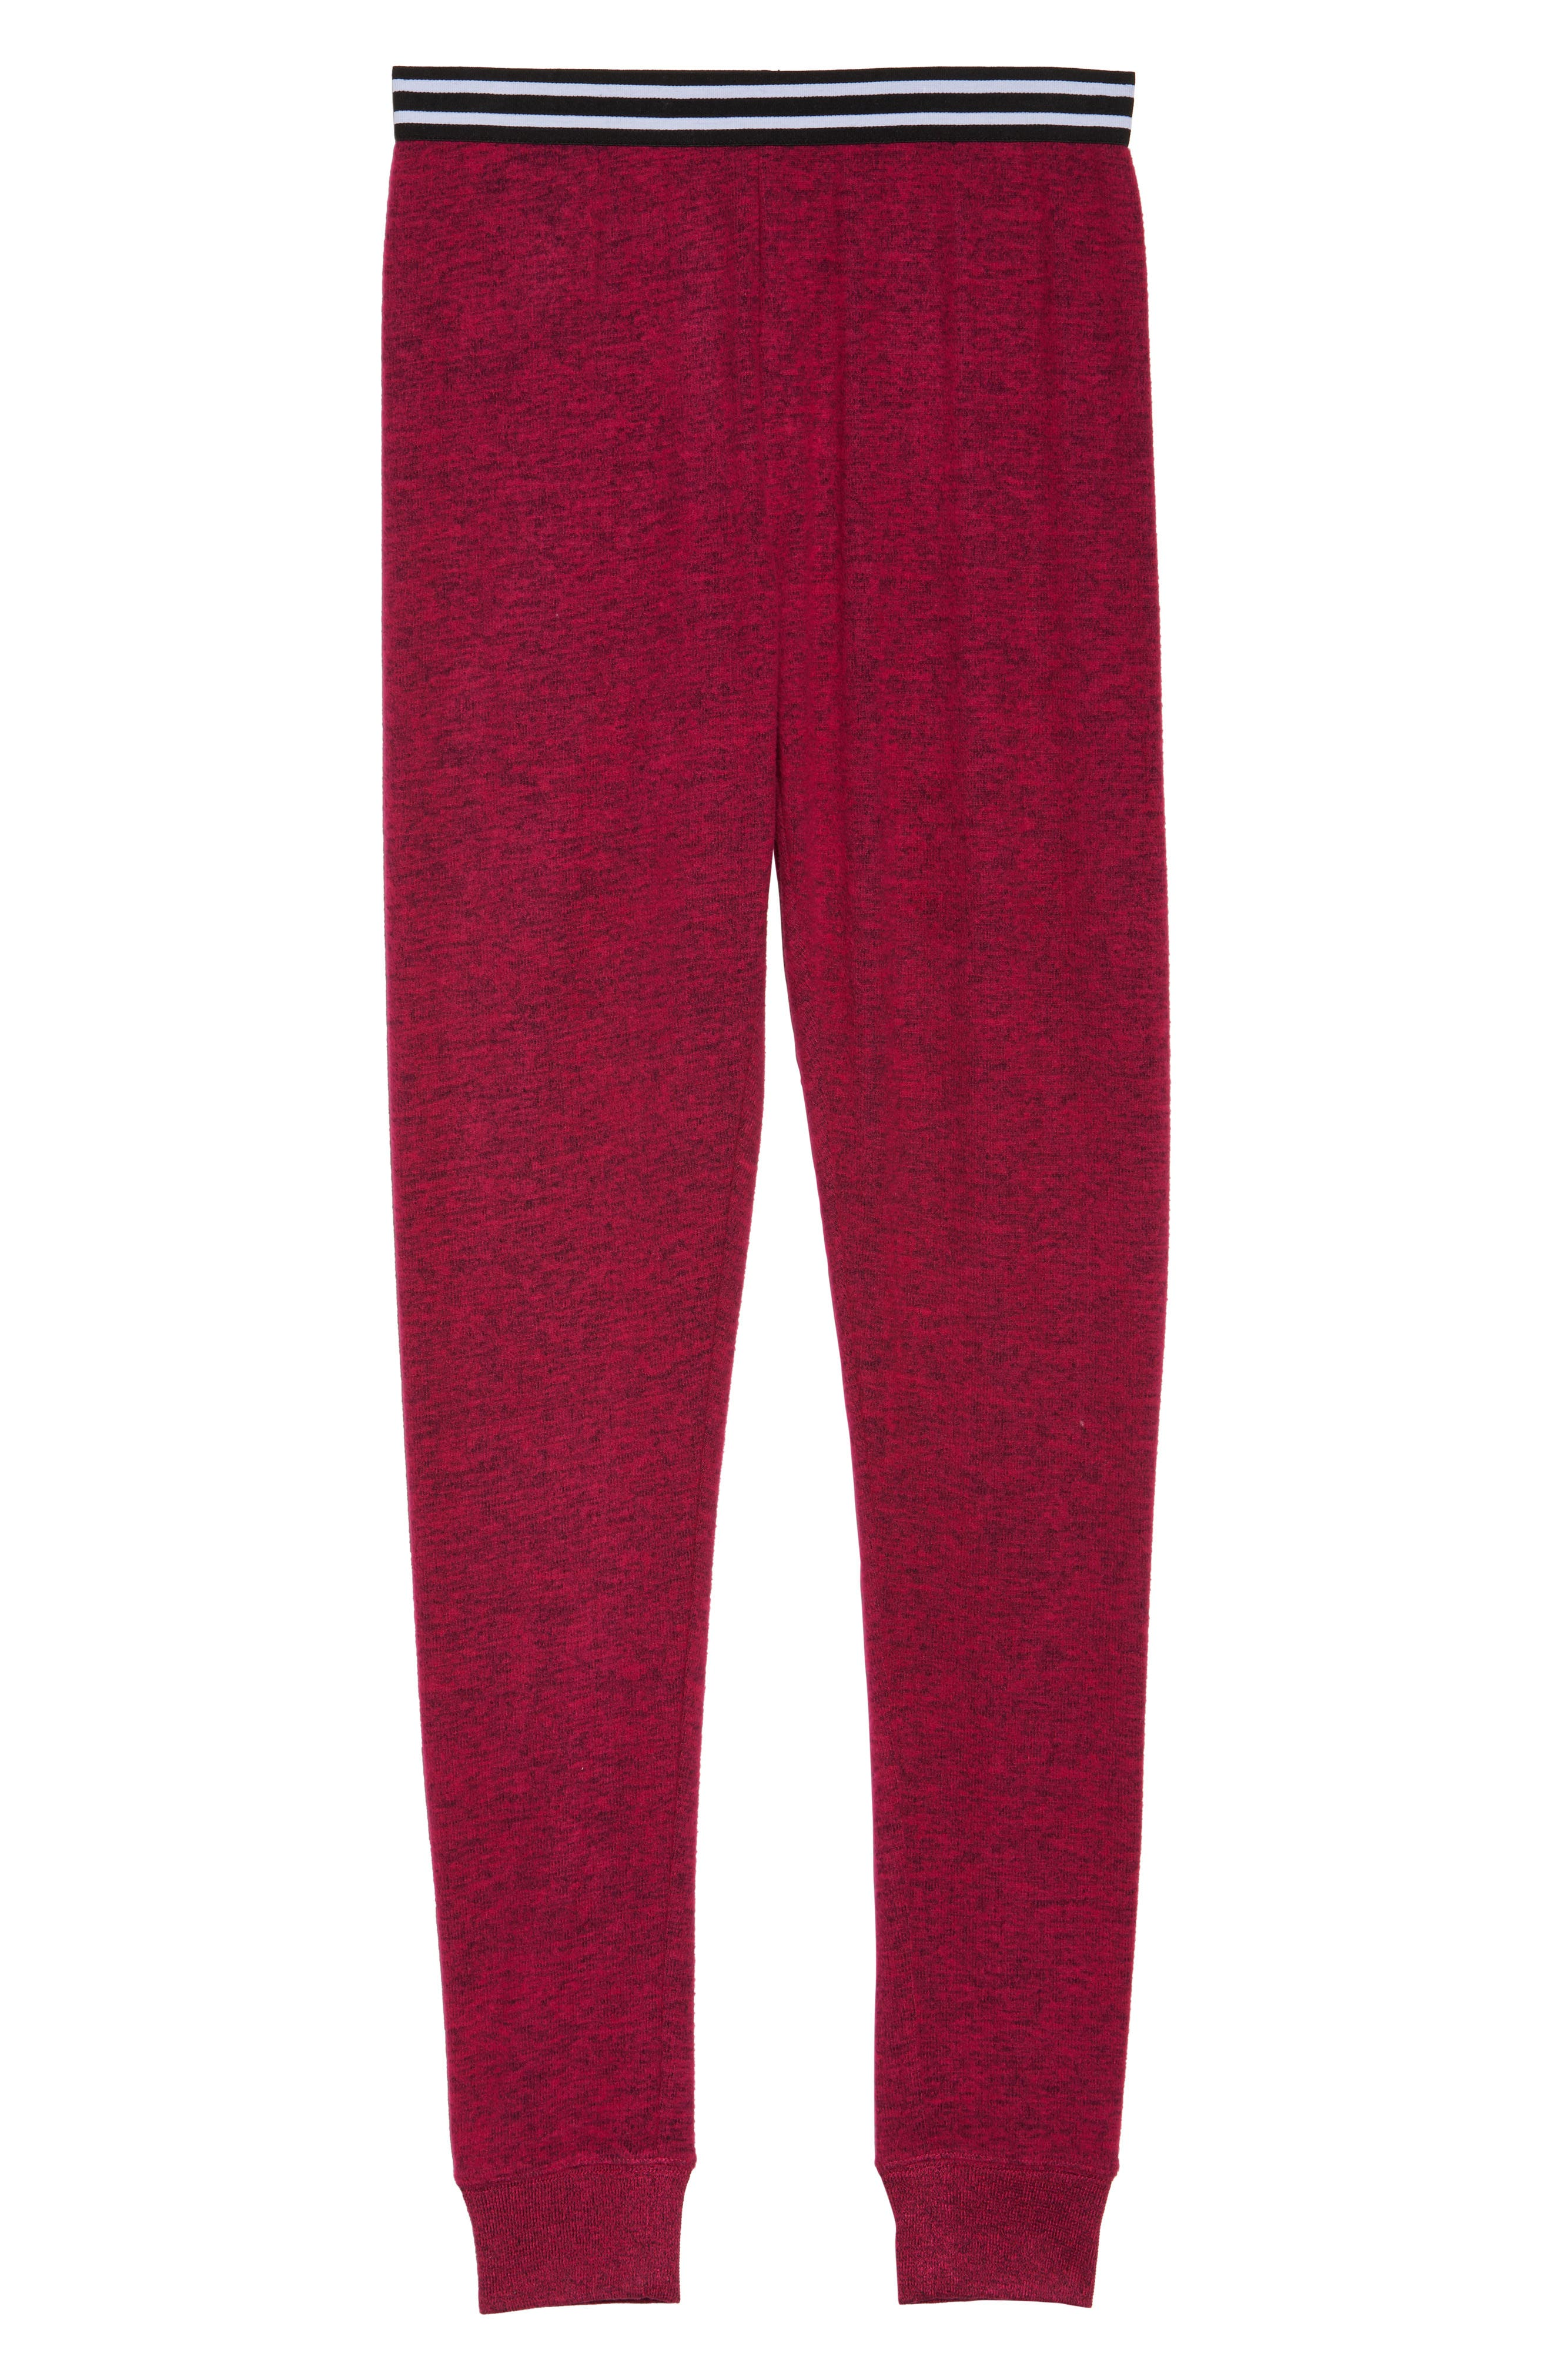 Cuddle Up Lounge Leggings,                             Alternate thumbnail 4, color,                             Pink Vivacious Marl